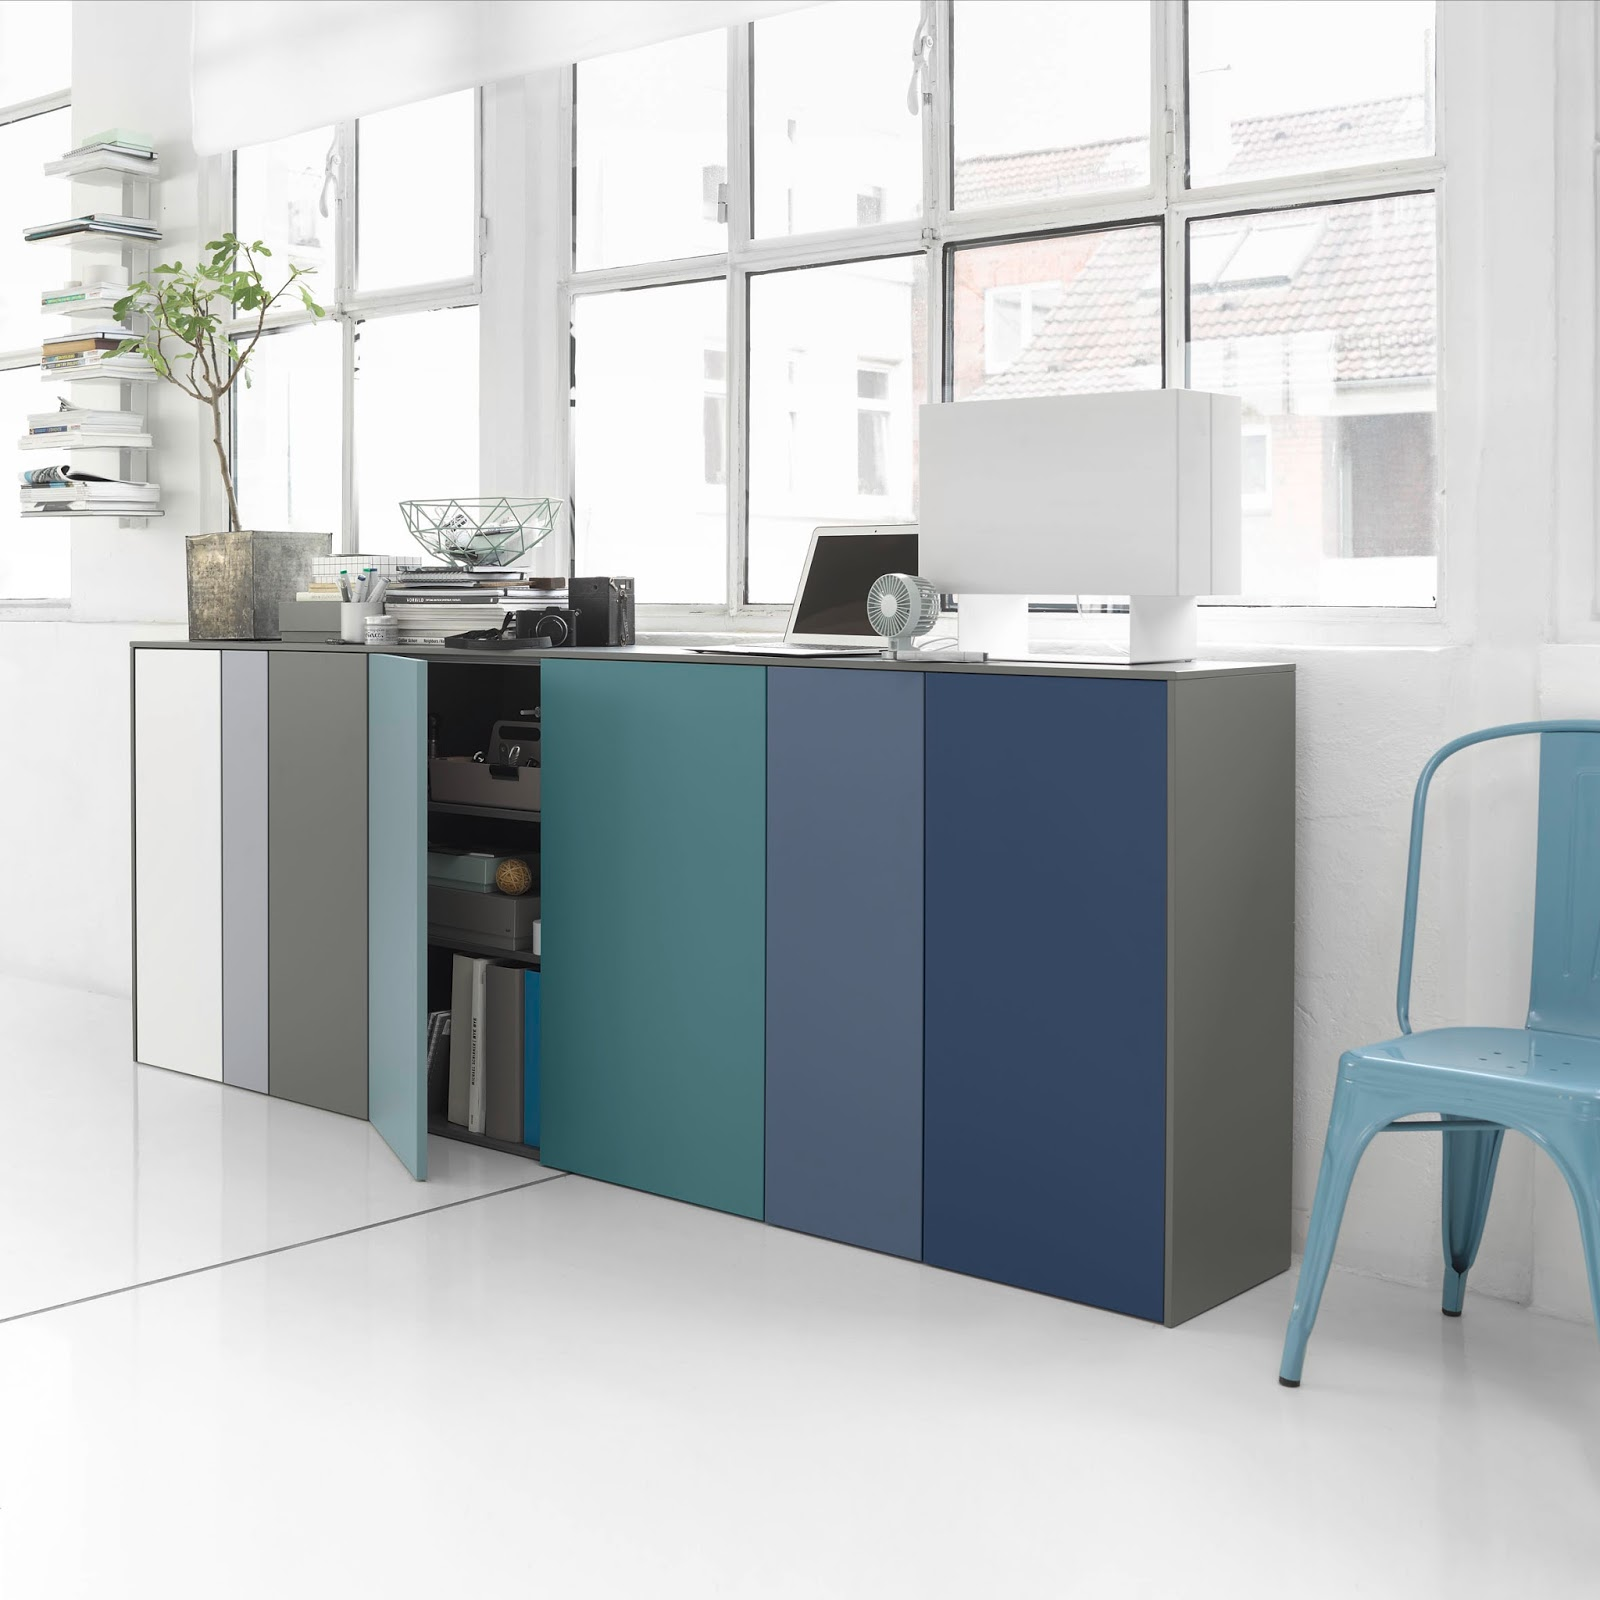 Nolte India: How to Make a Small Kitchen Look Larger (Part ...